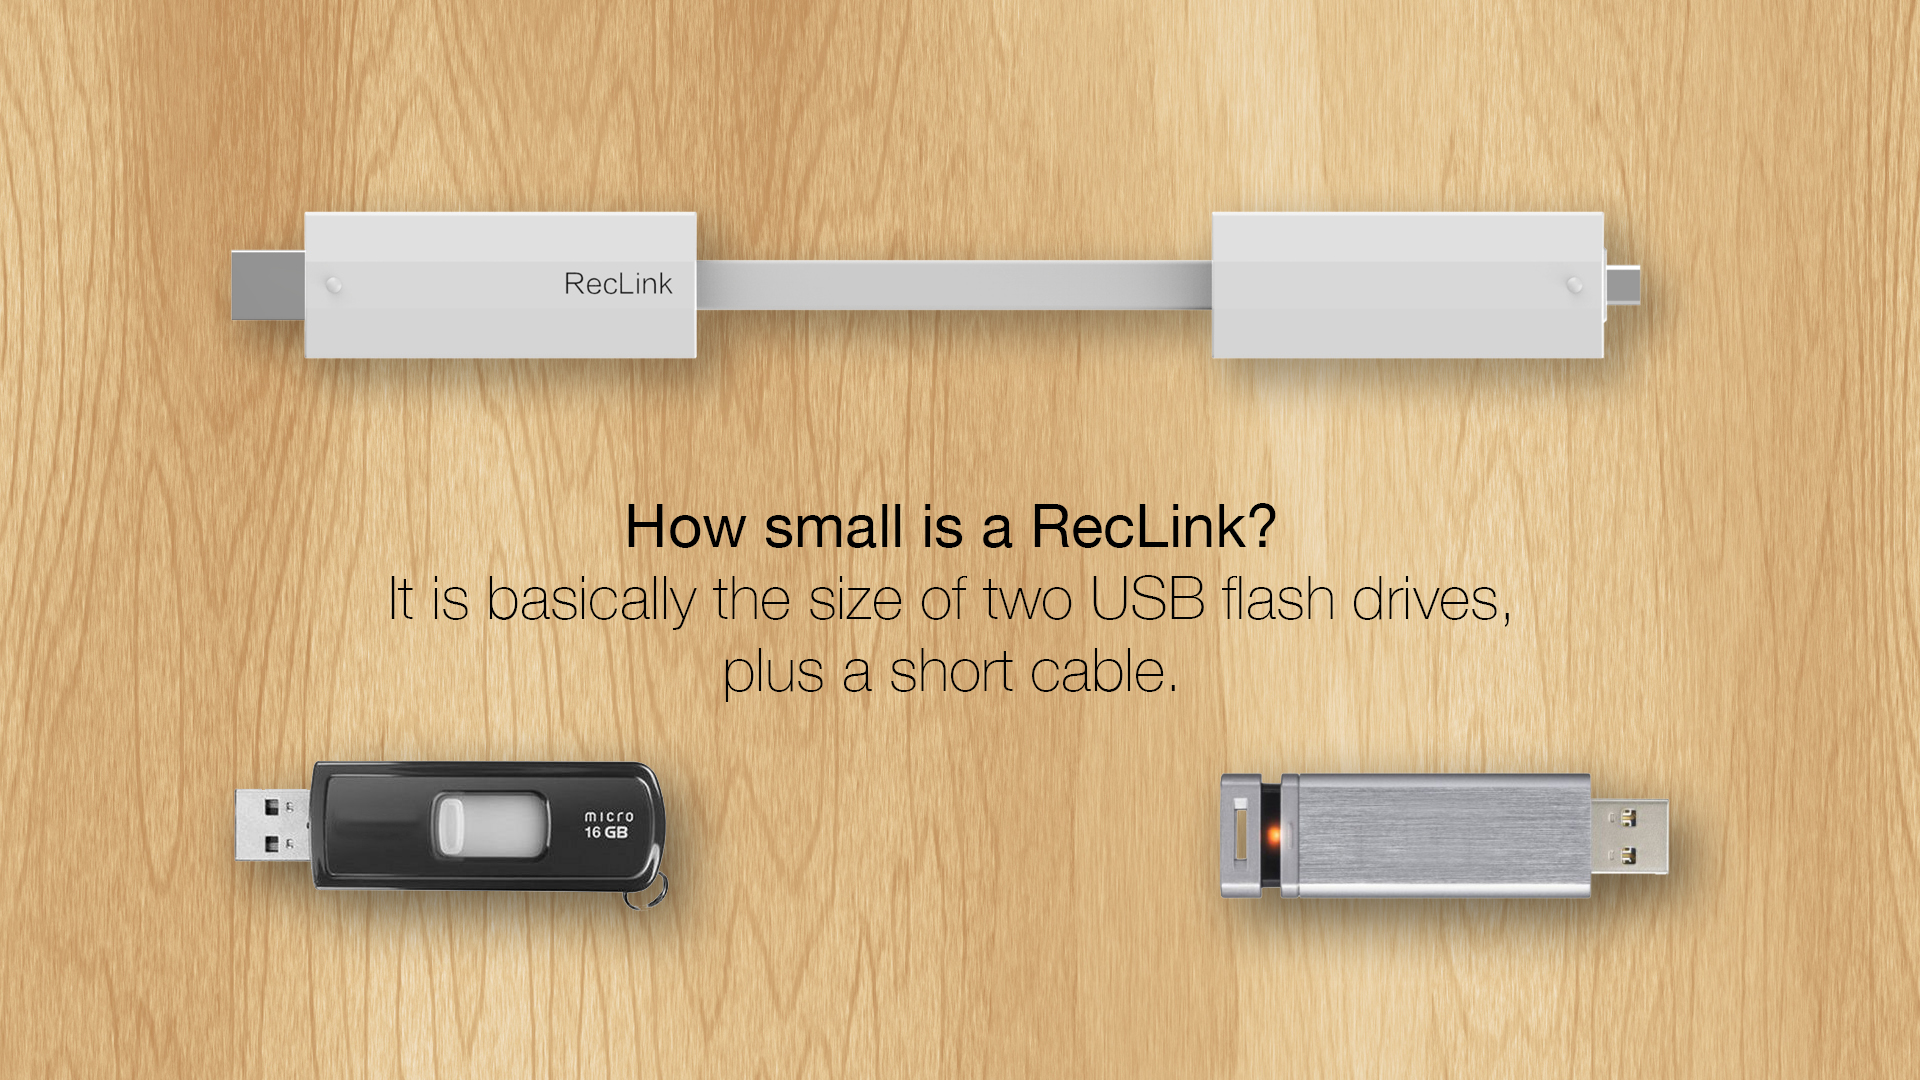 How small is a RecLink? It is basically the size of two USB flash drives, plus a short cable.